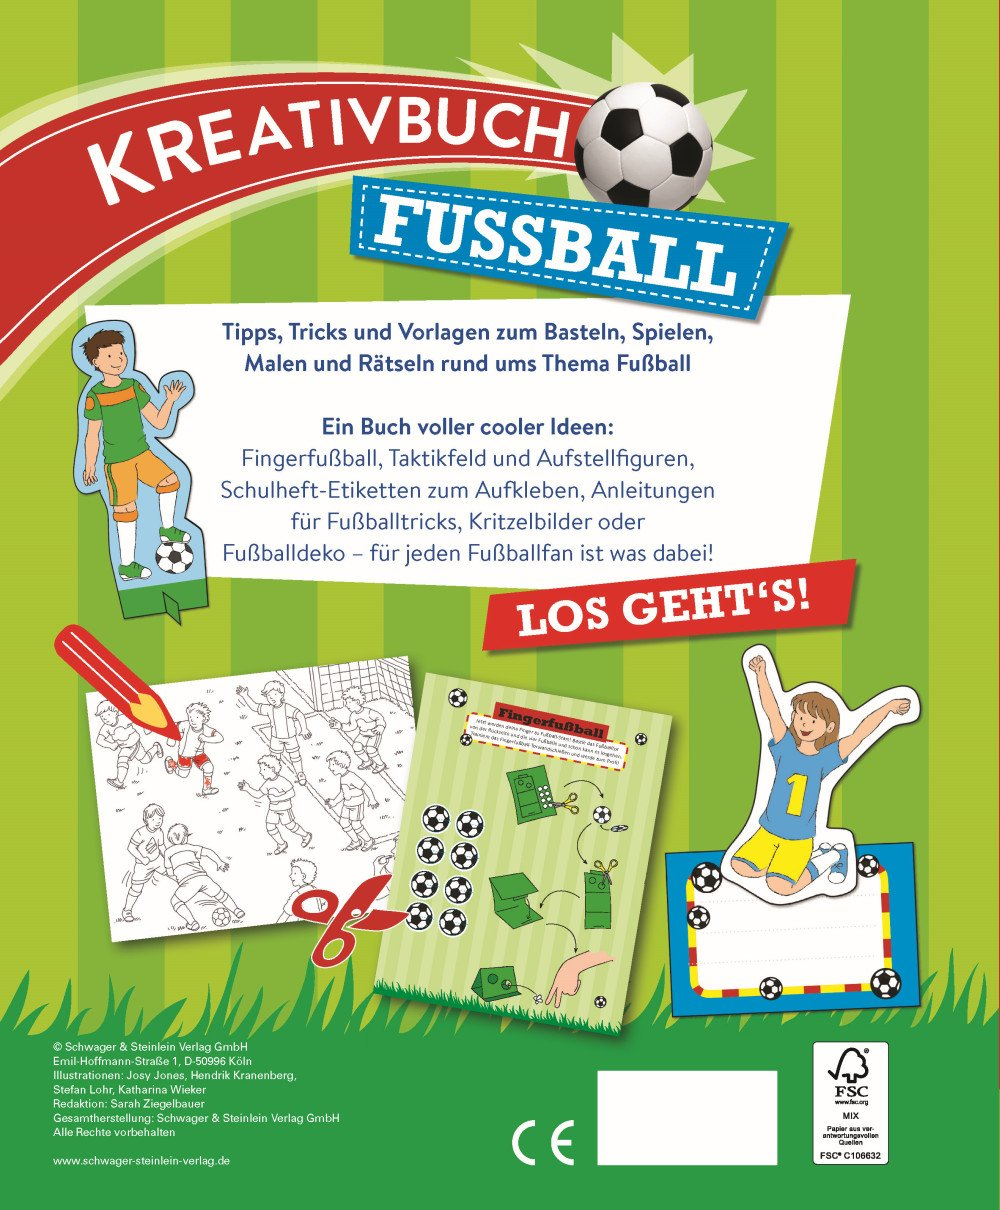 Kreativbuch Fussball 9783849911812 Amazon Com Books